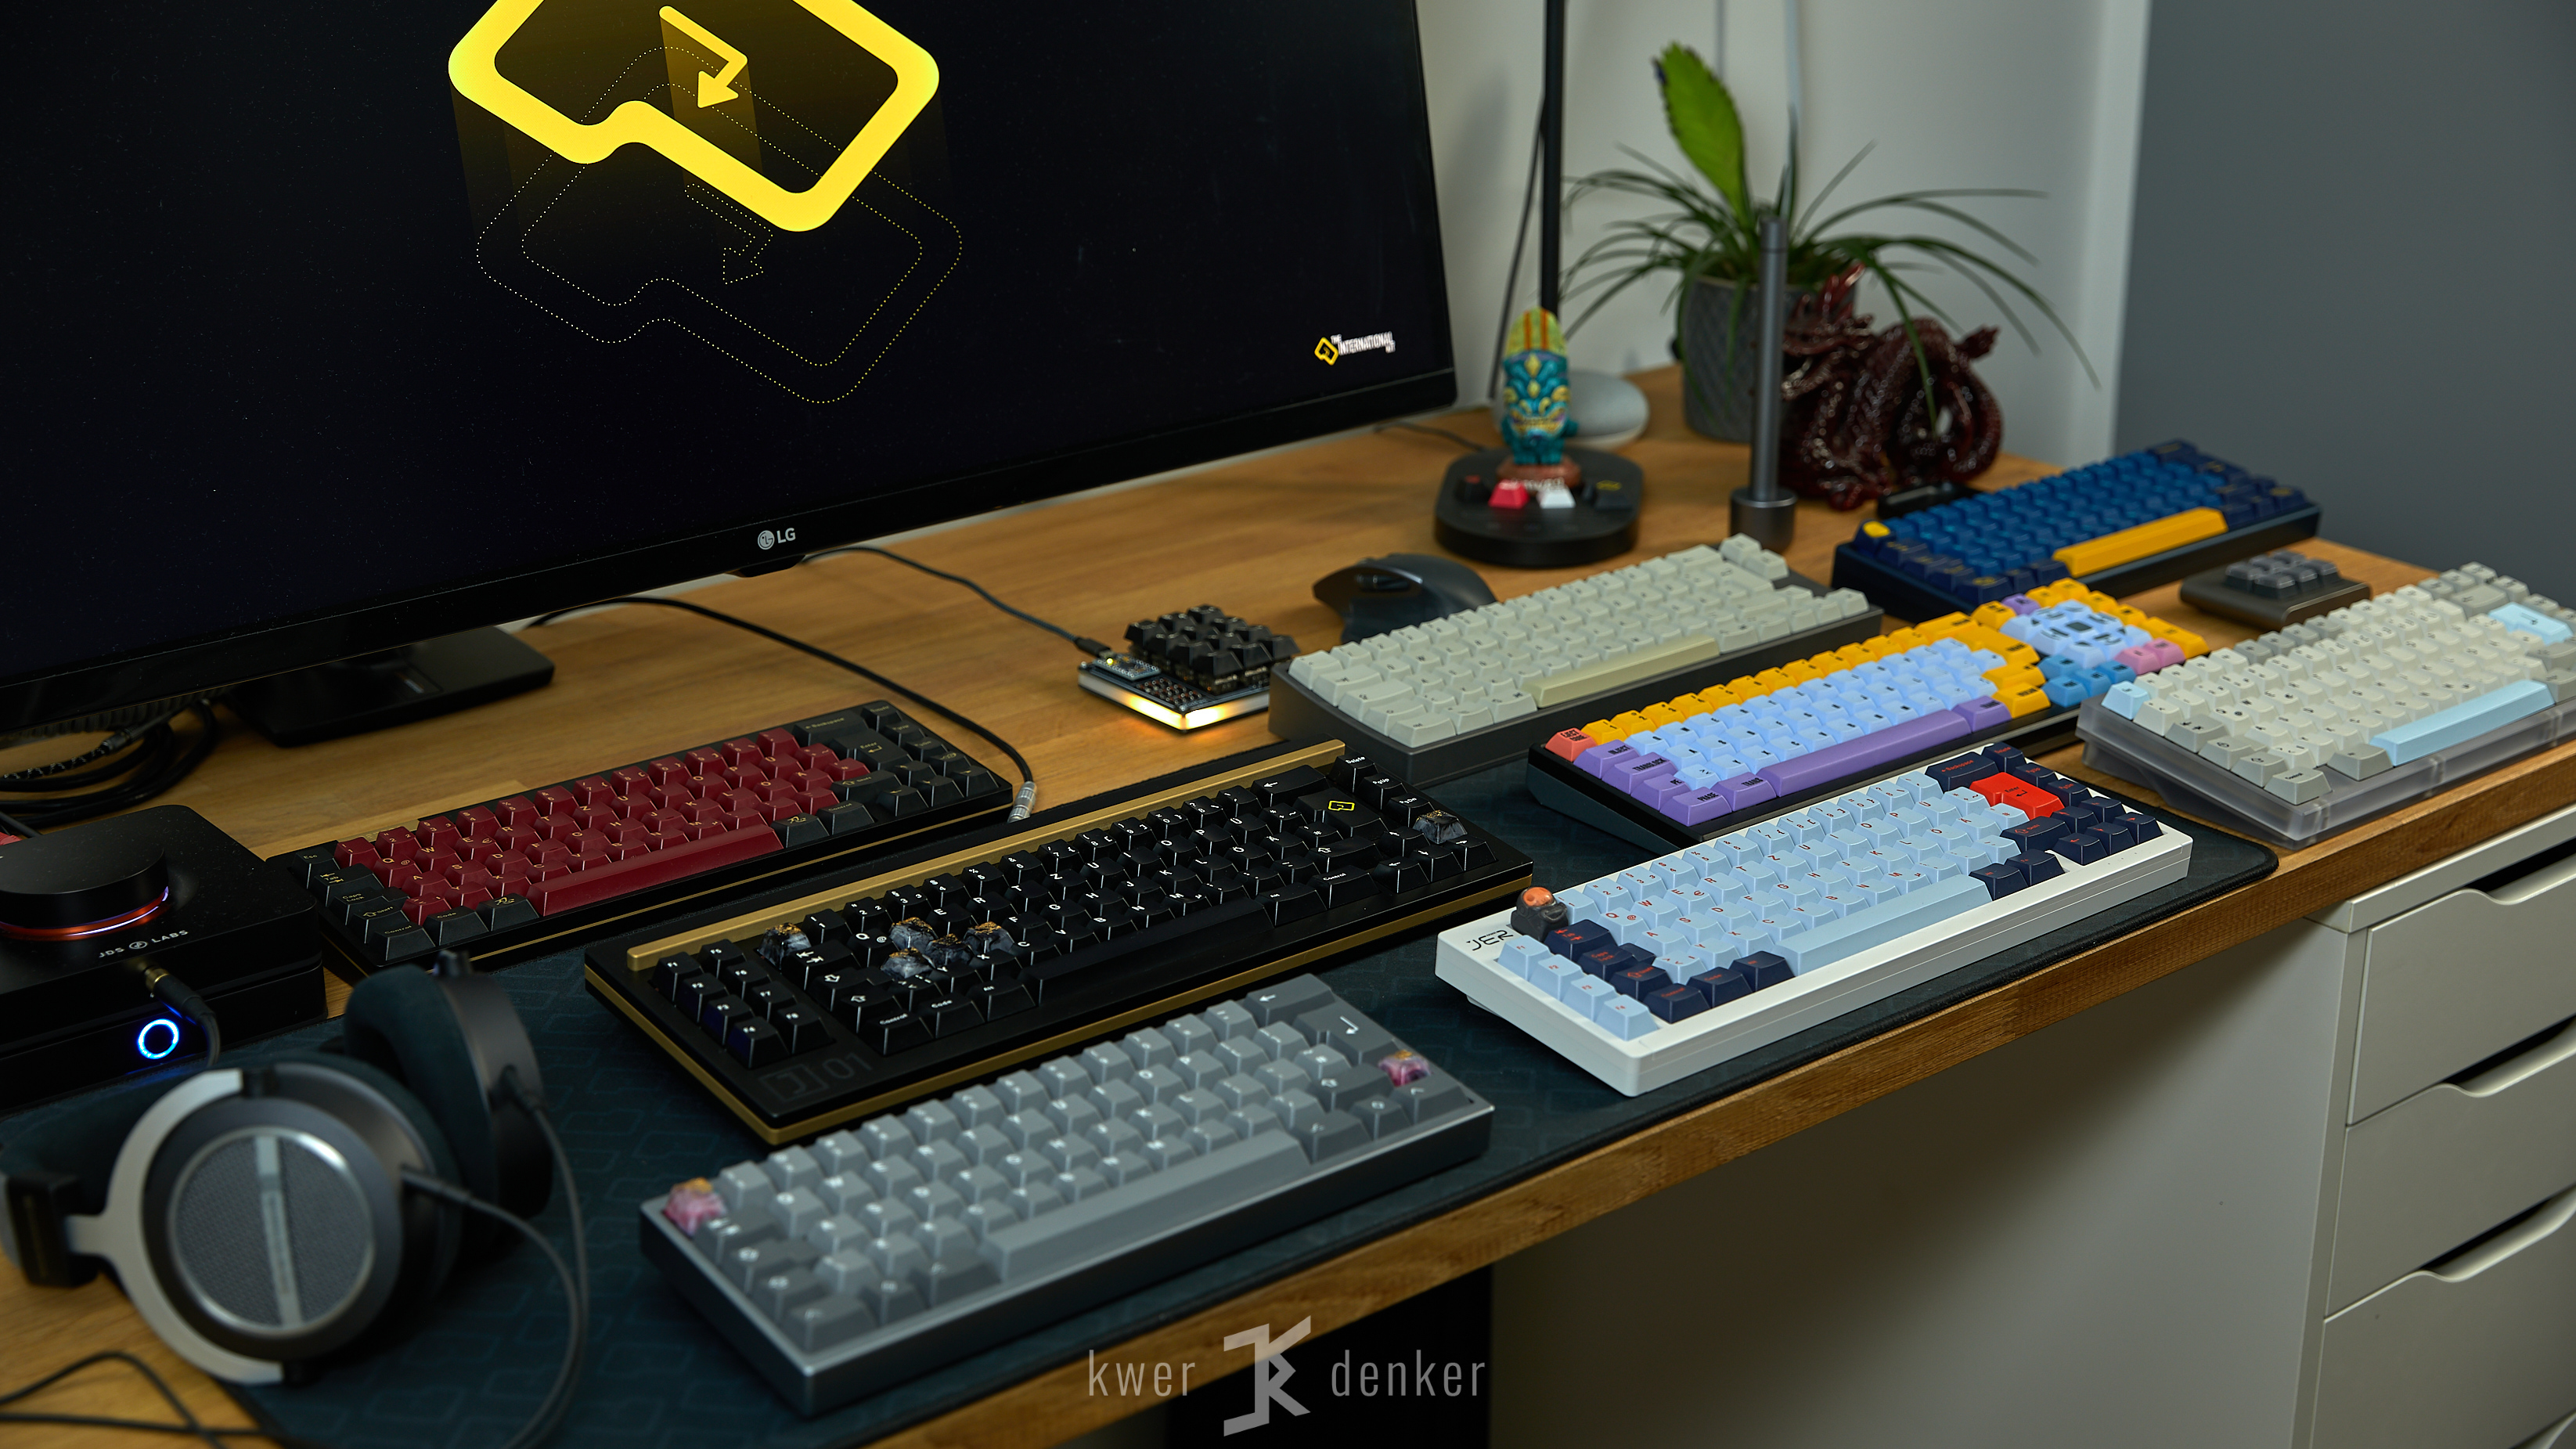 Keyboard collection on a desk